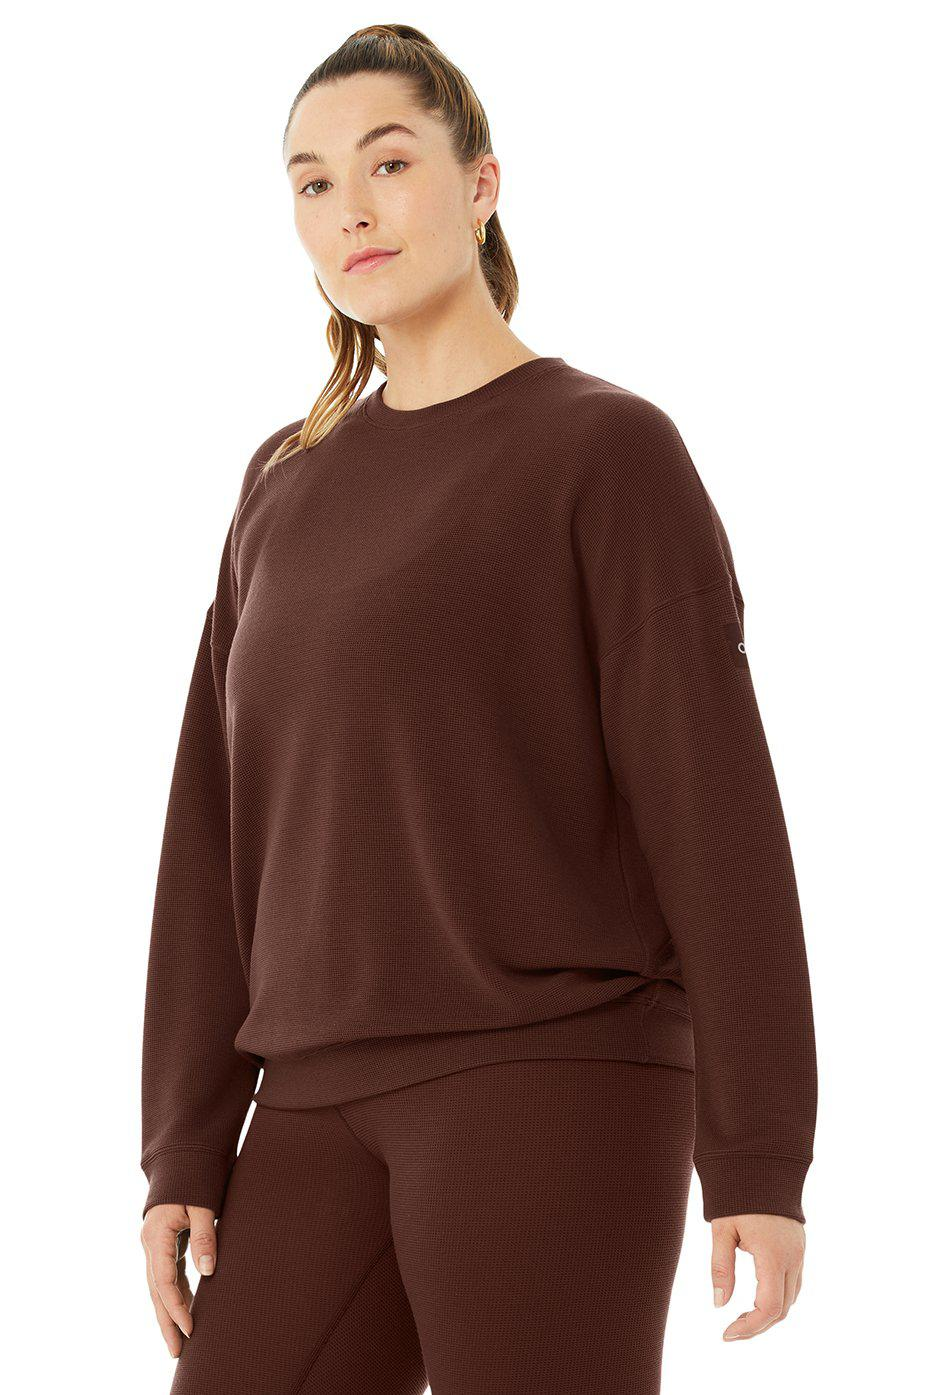 Micro Waffle Relaxation Pullover - Cherry Cola 4